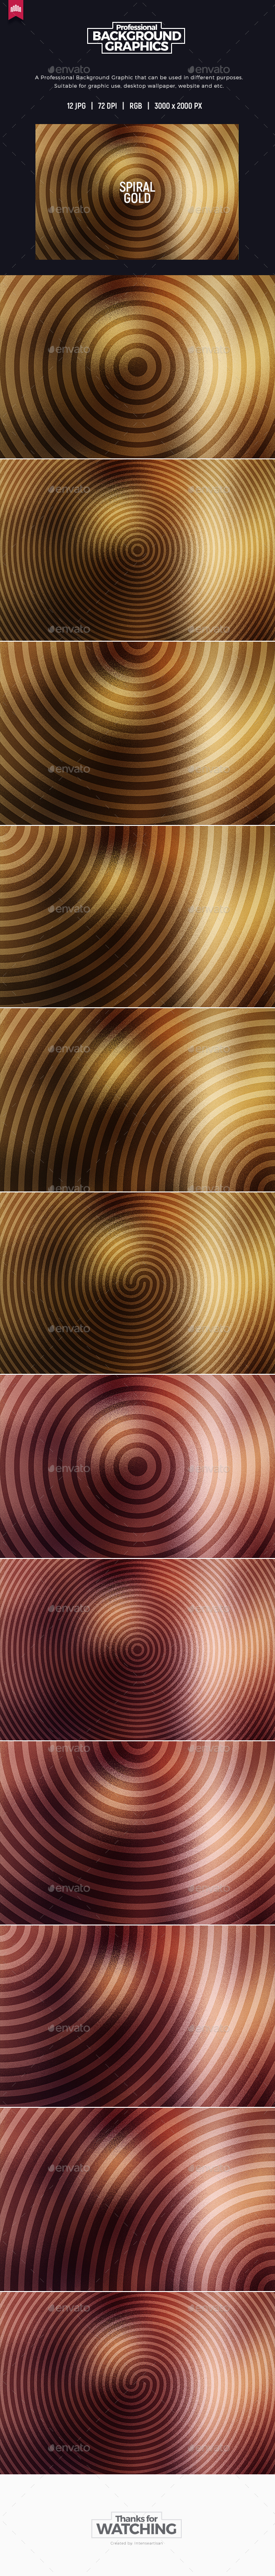 Spiral Gold - Background - Backgrounds Graphics